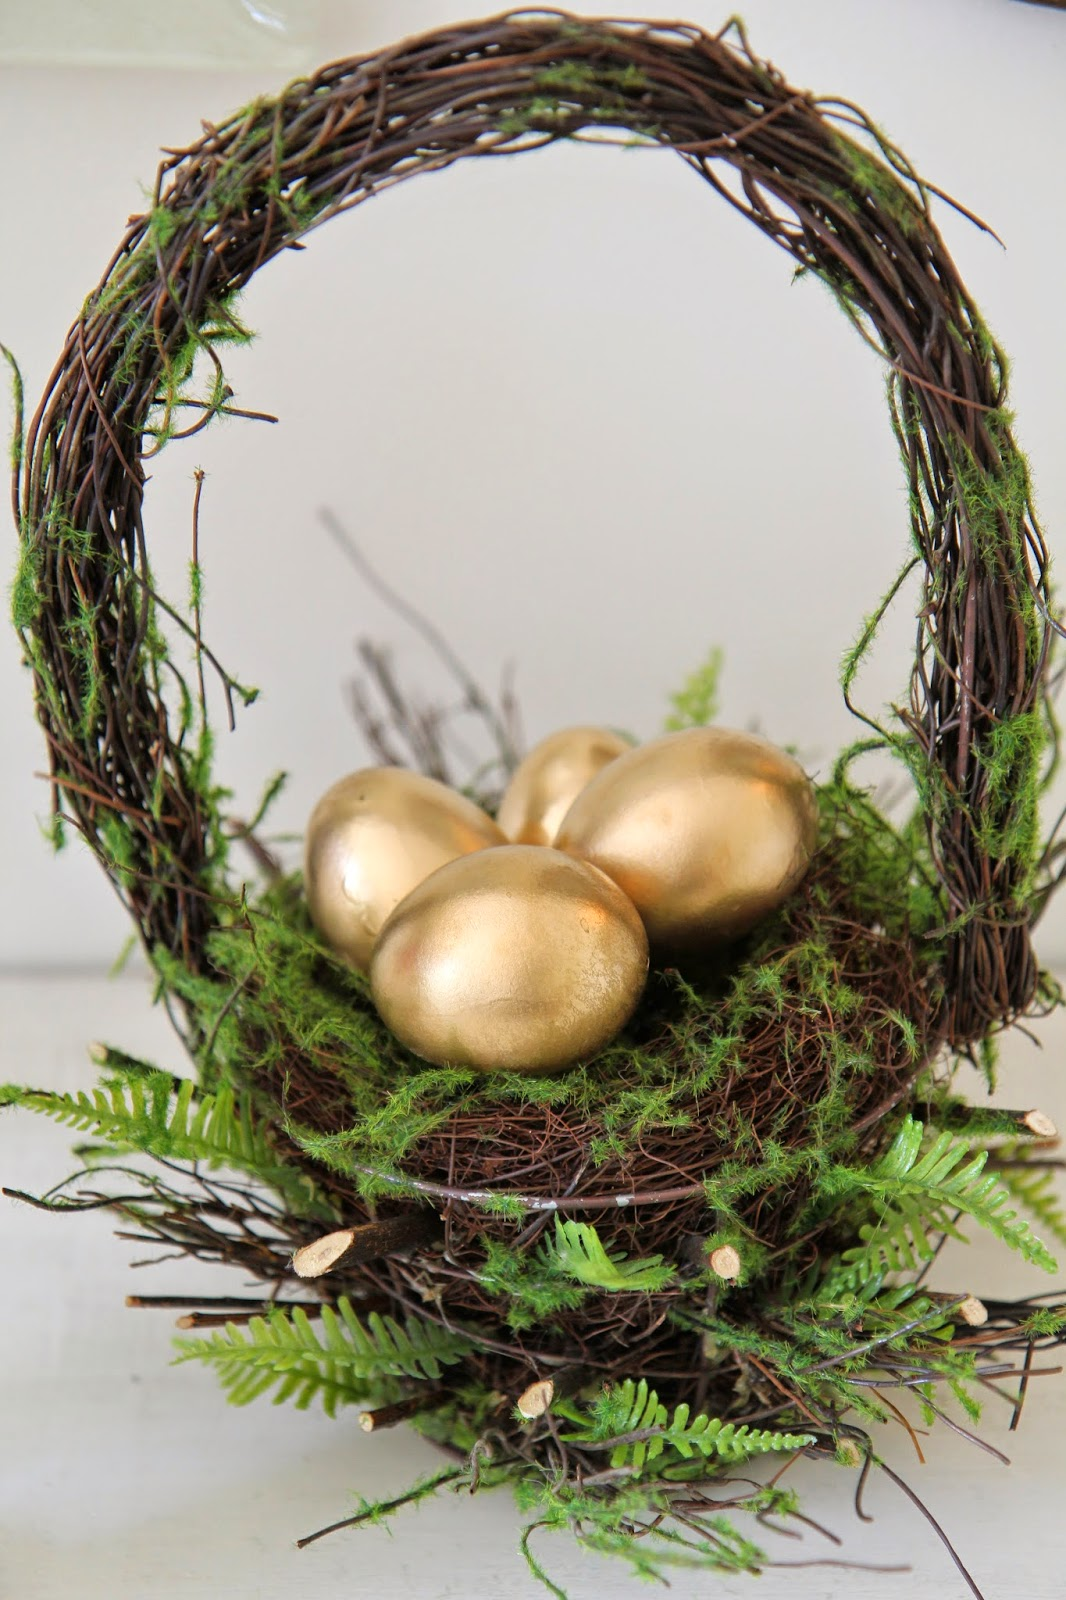 Nora S Nest Easter Buffet Table Decor